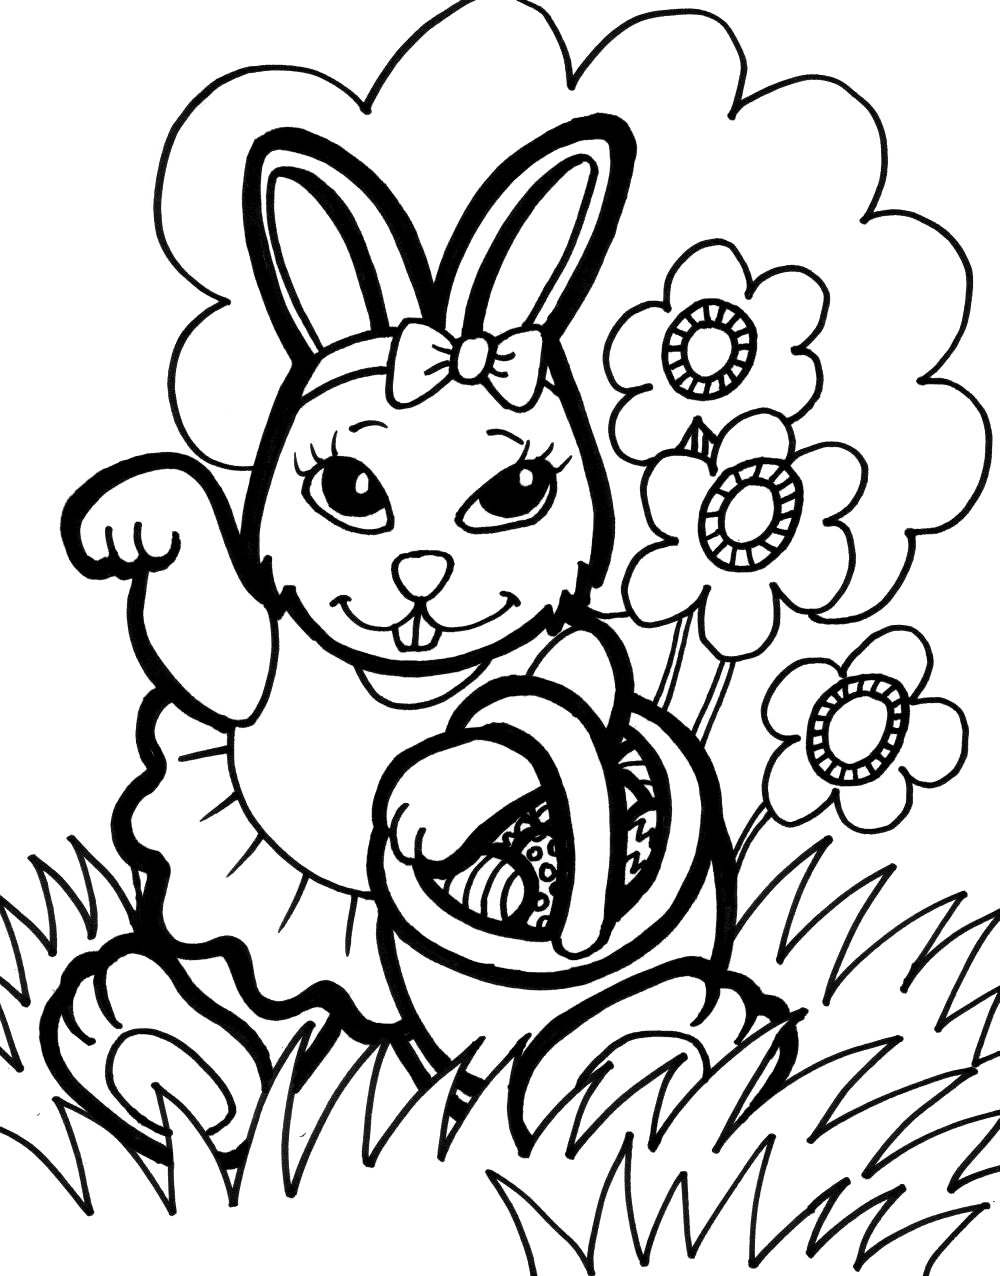 coloring printable free zebra coloring pages free printable kids coloring pages free printable coloring